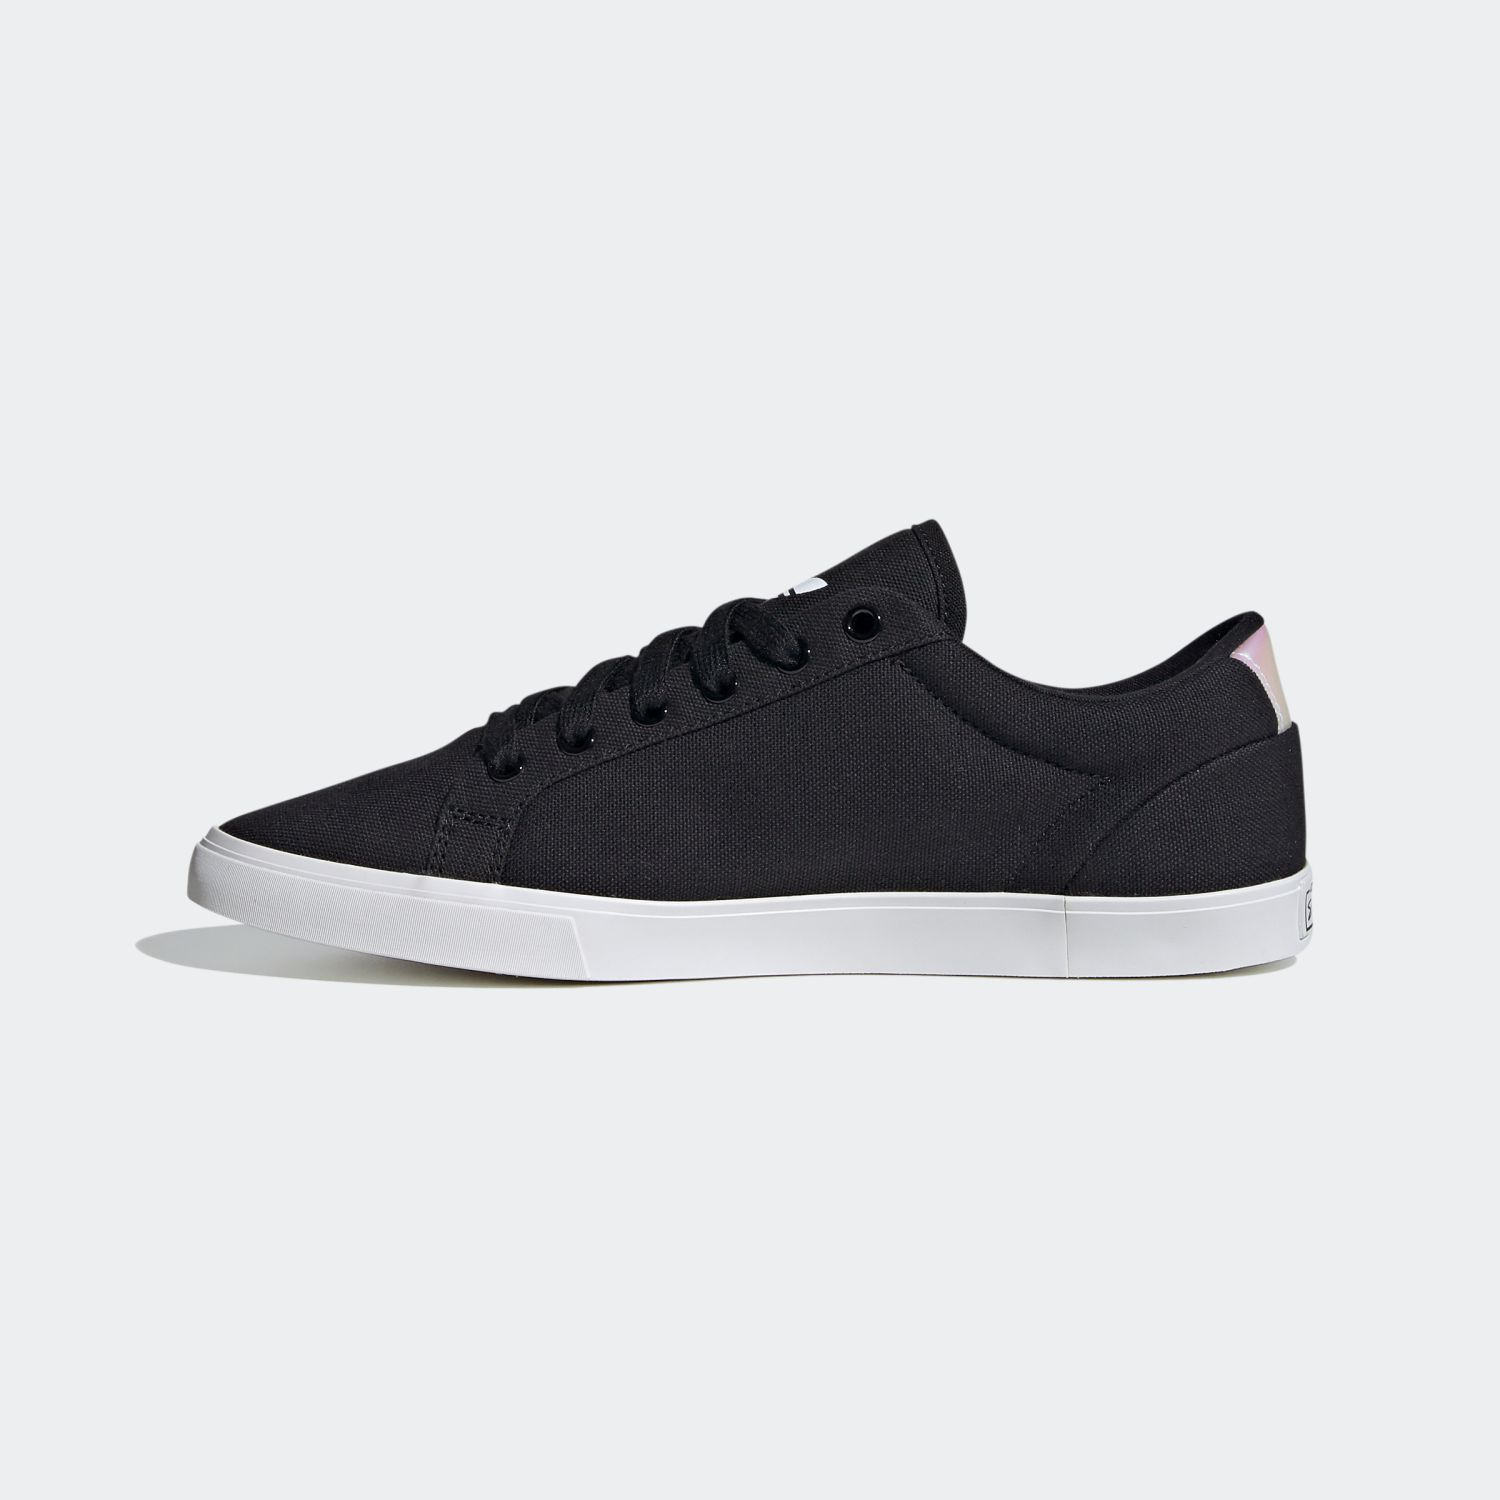 adidas Sleek Lo Core Black (ウィメンズ) [2]